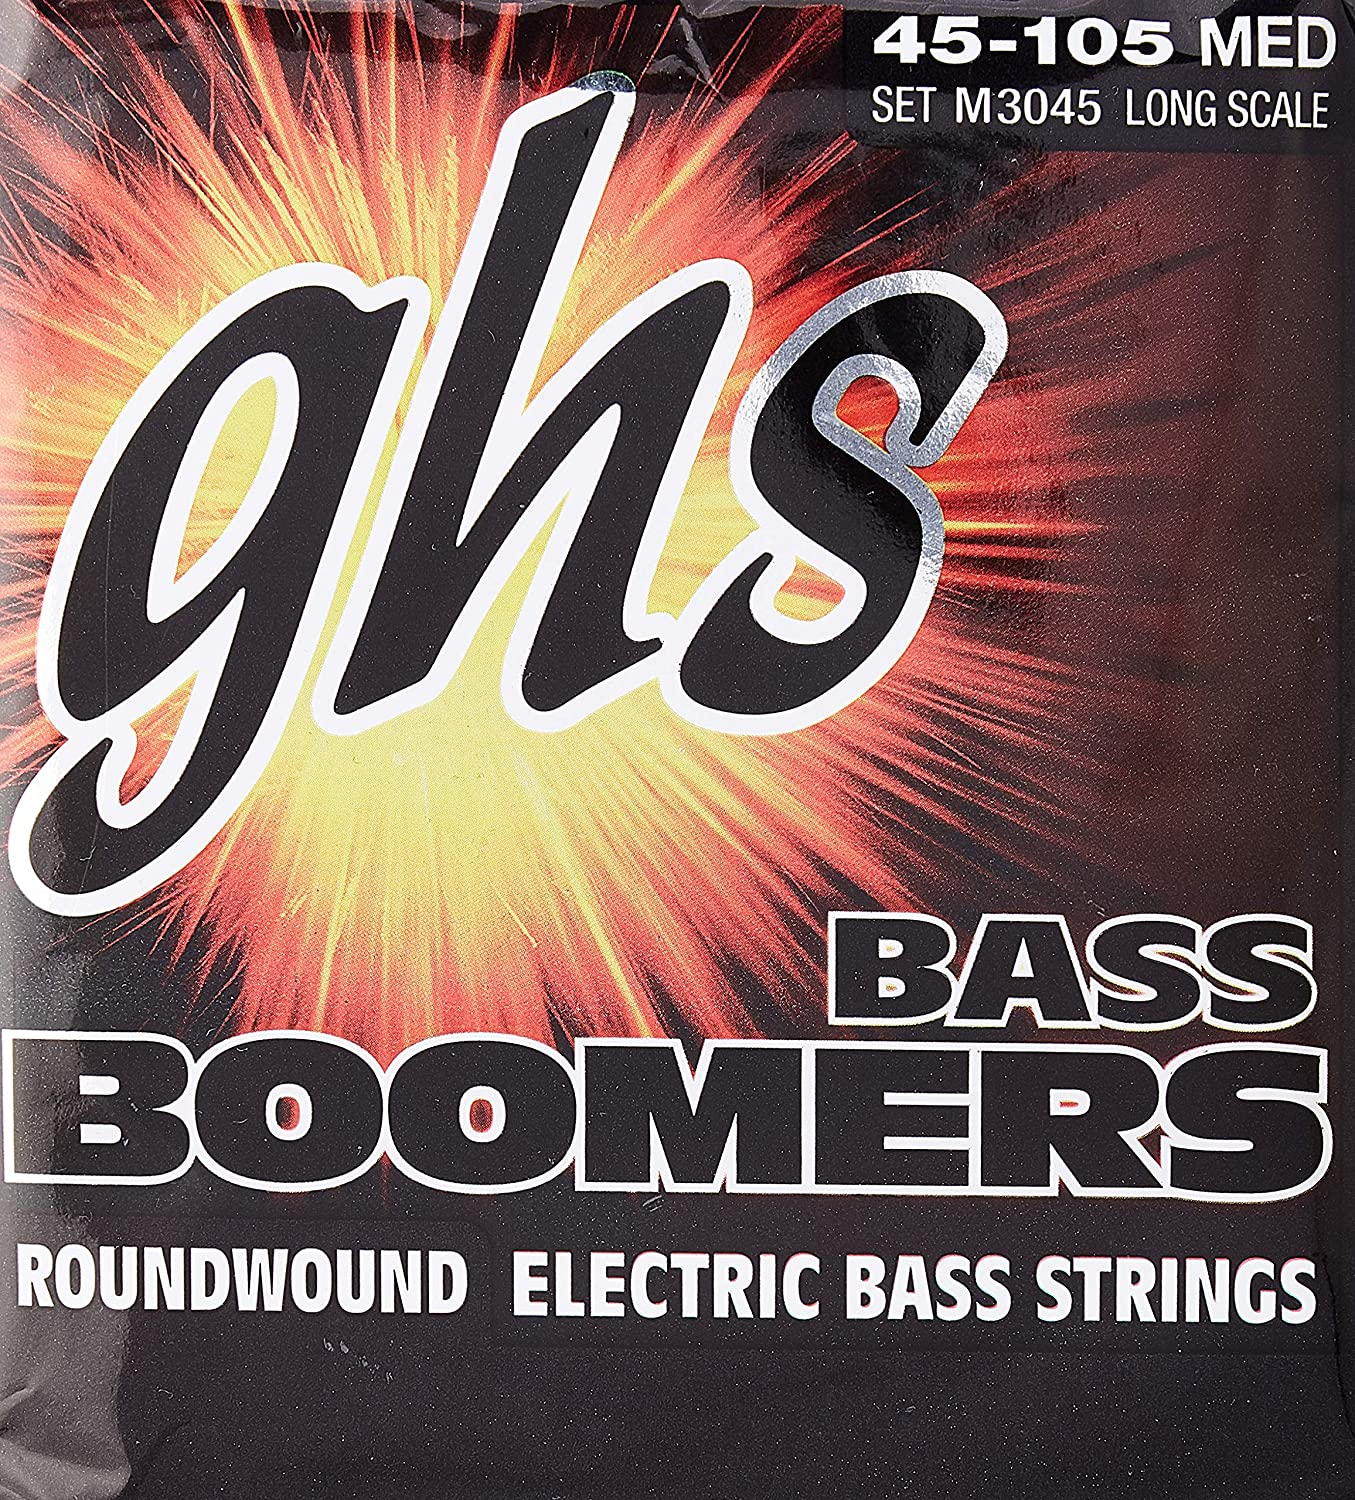 B0002D01UO GHS Strings M3045 4-String Bass Boomers, Nickel-Plated Electric Bass Strings, Long Scale, Medium (.045-.105) A1JCcKPNcRL